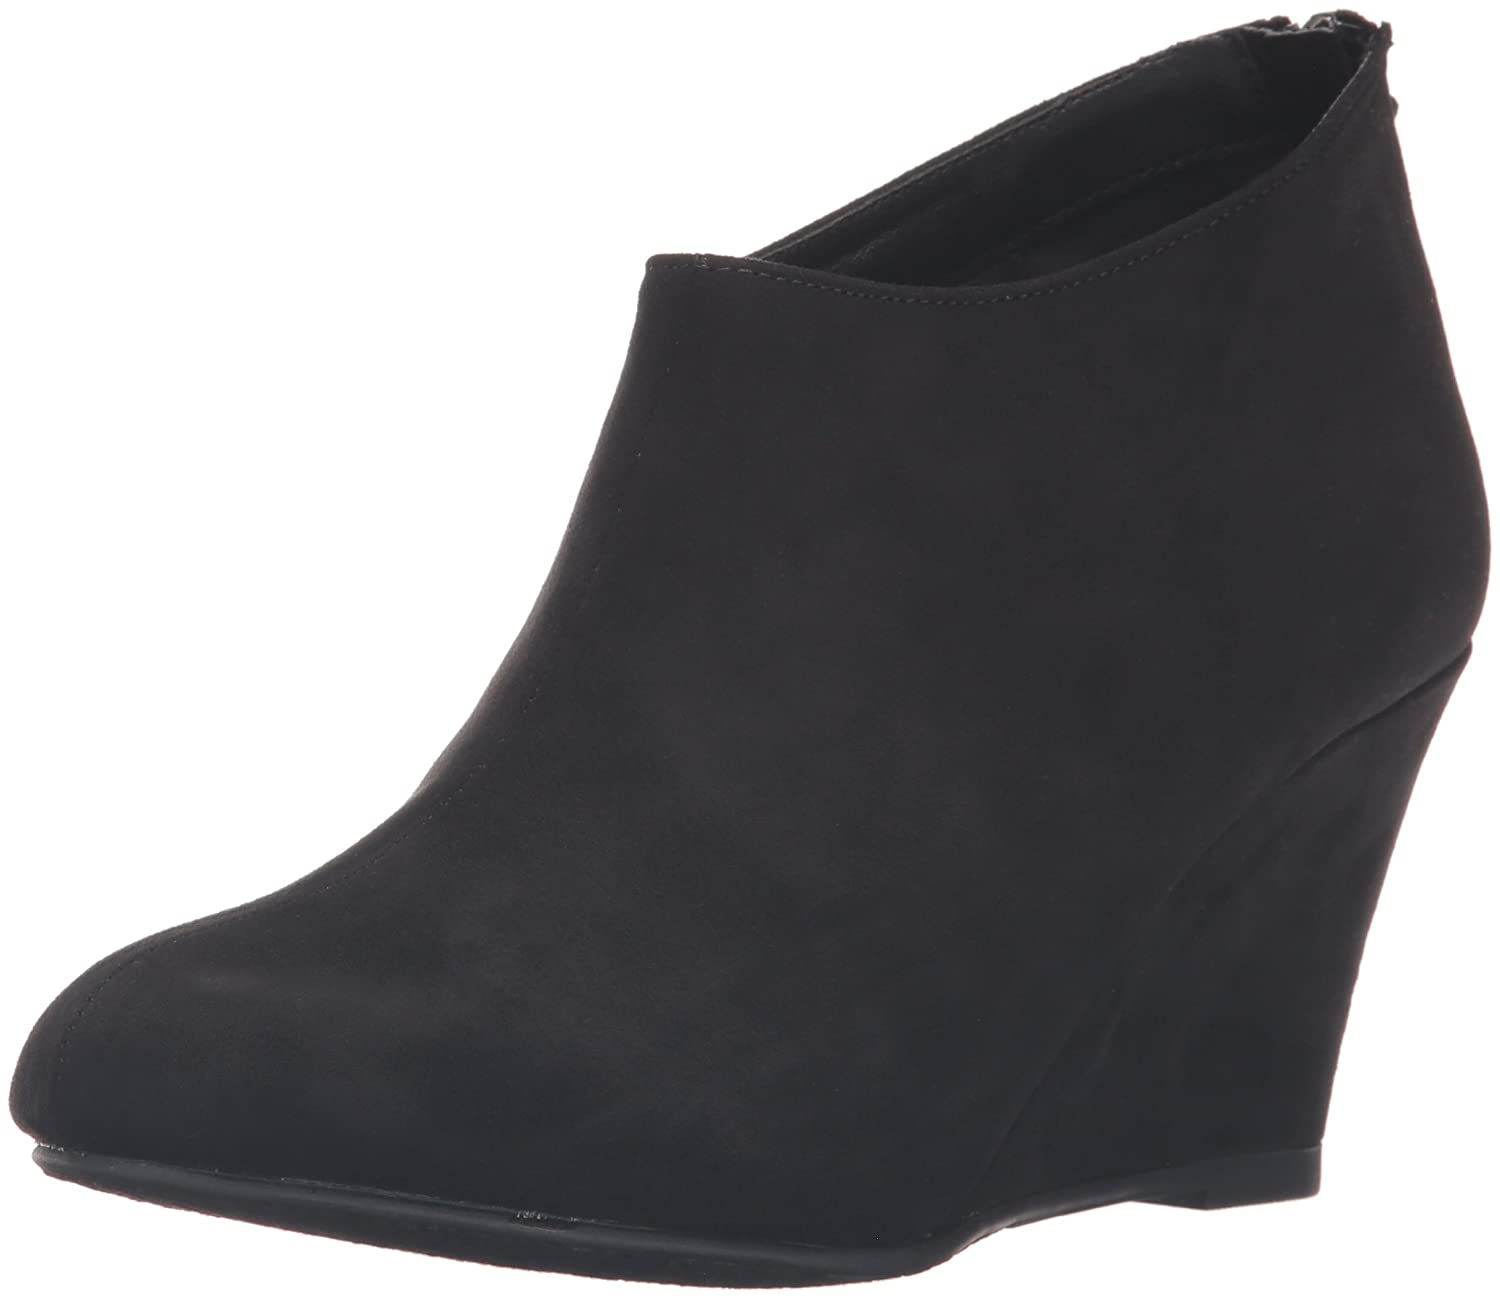 CL by Chinese Laundry Women's Via Wedge Bootie B01EZEHR4S 6.5 B(M) US|Black Super Suede